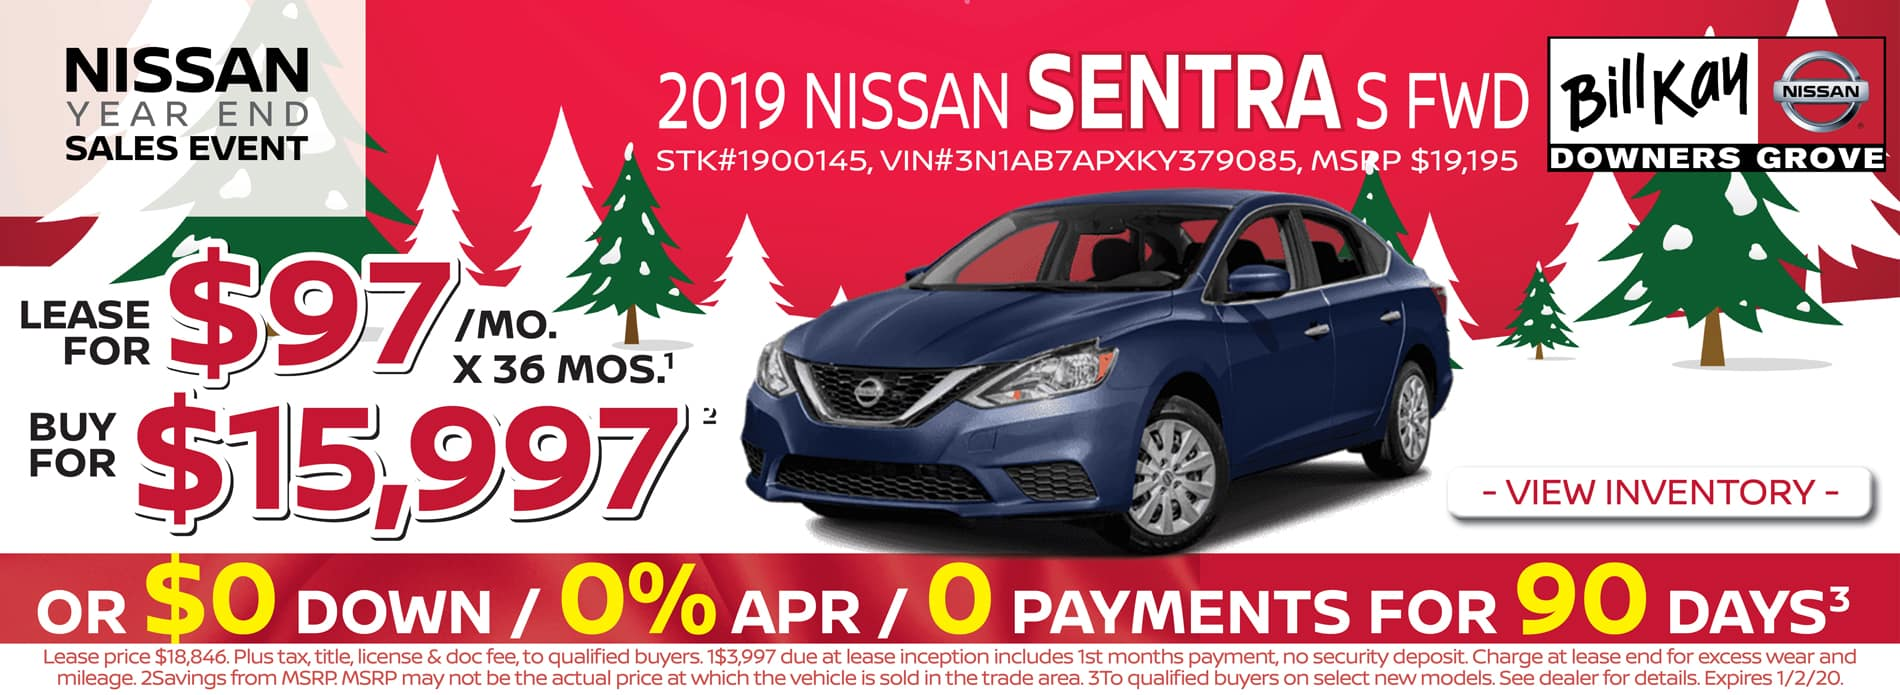 Buy a 2019 Nissan Sentra for $14,997